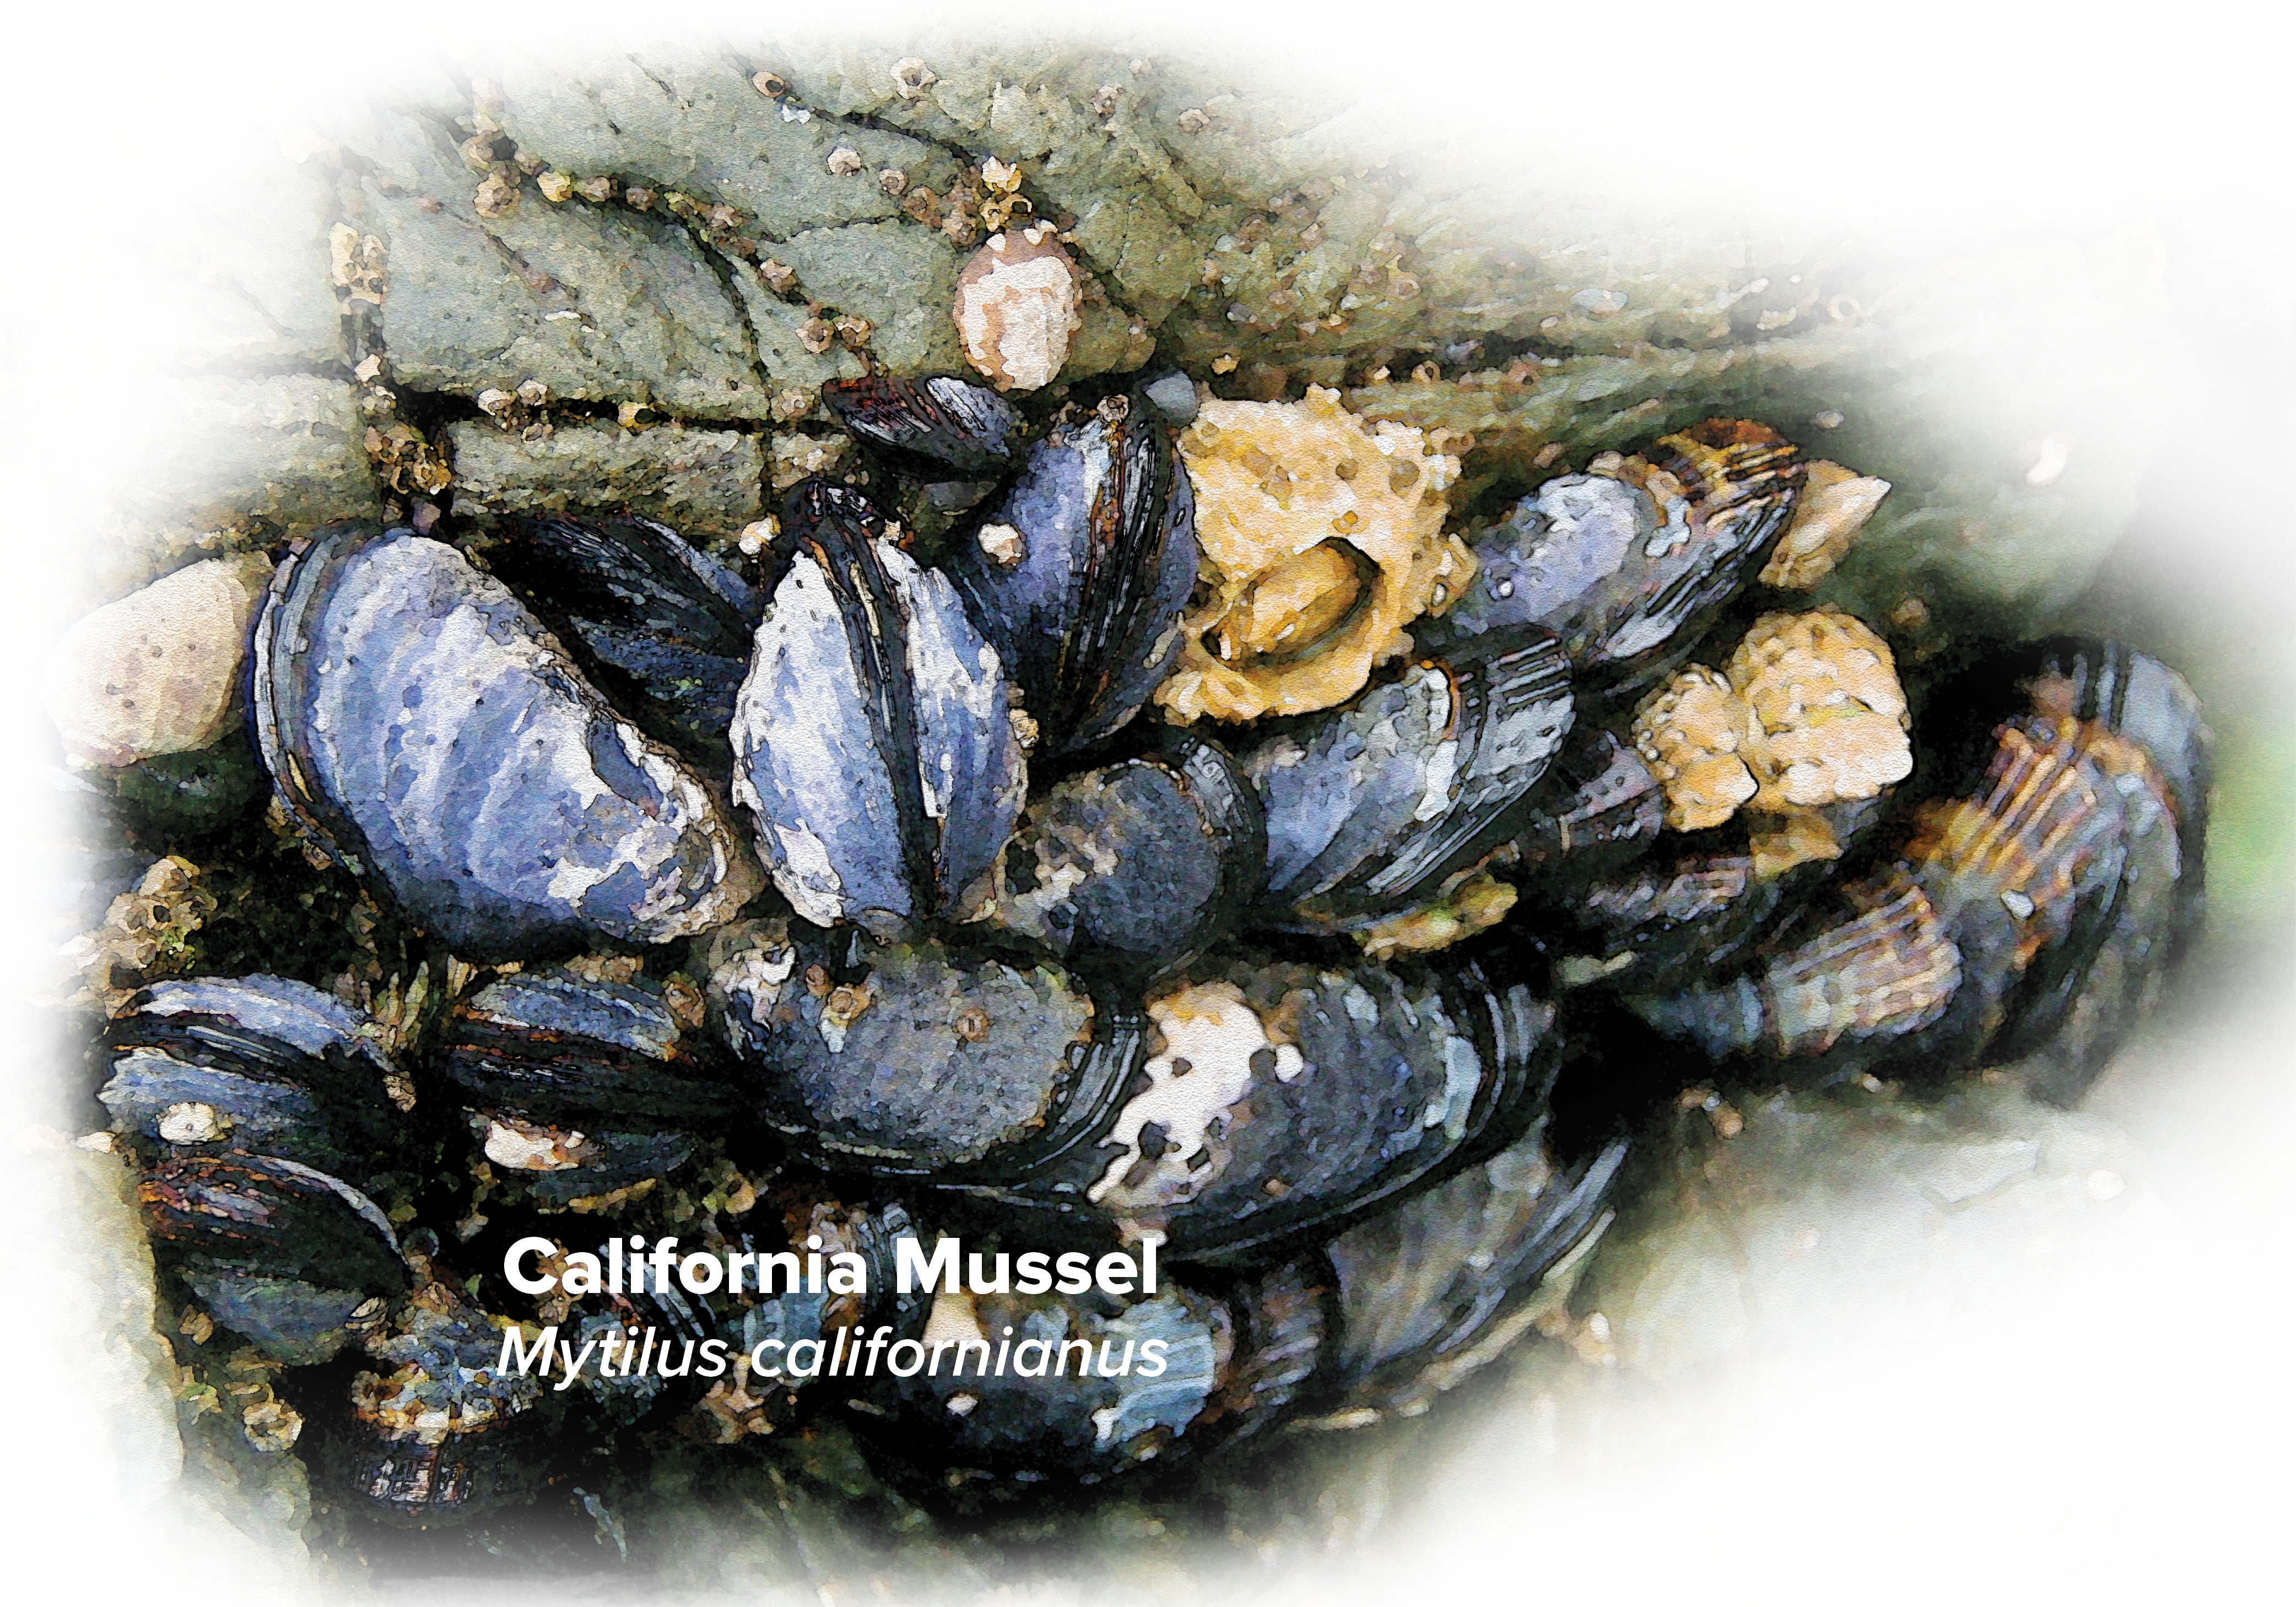 Watercolor illustration of California Mussels